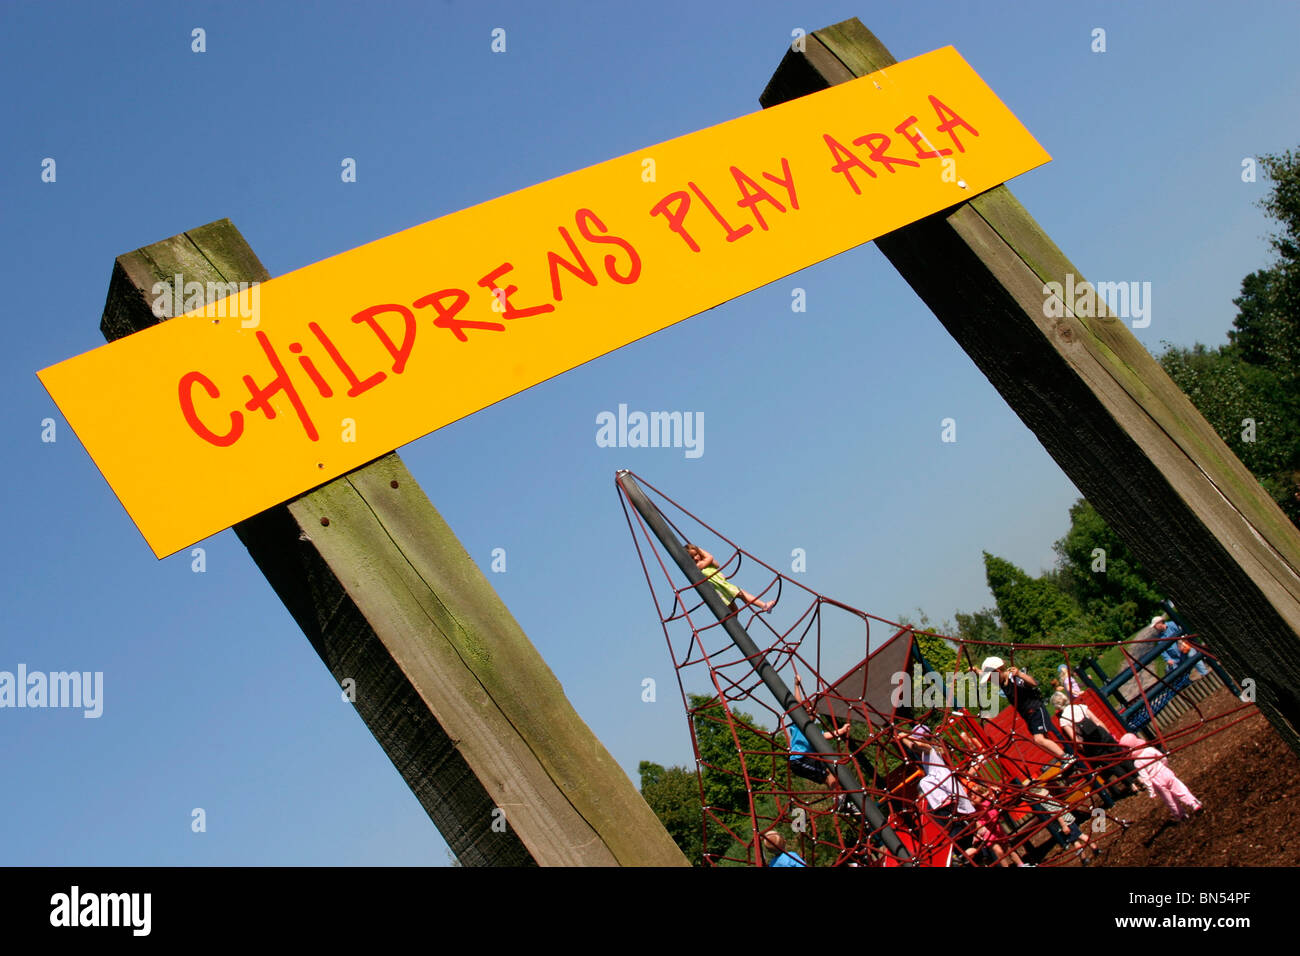 England, Cheshire, Stockport, Cheadle, Bruntwood Park, award-winning children's play area sign - Stock Image